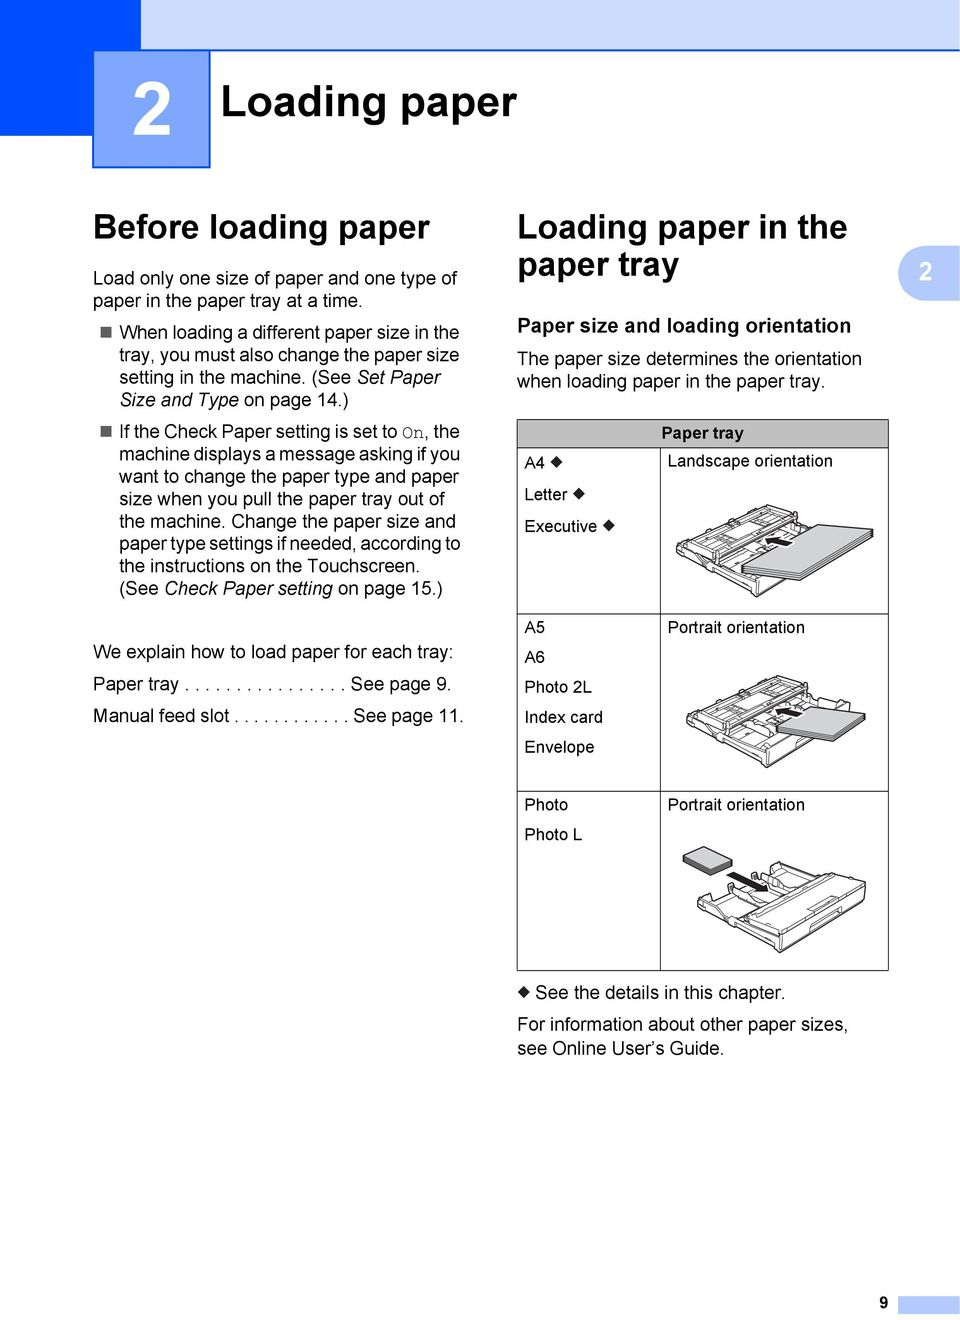 ) If the Check Paper setting is set to On, the machine displays a message asking if you want to change the paper type and paper size when you pull the paper tray out of the machine.